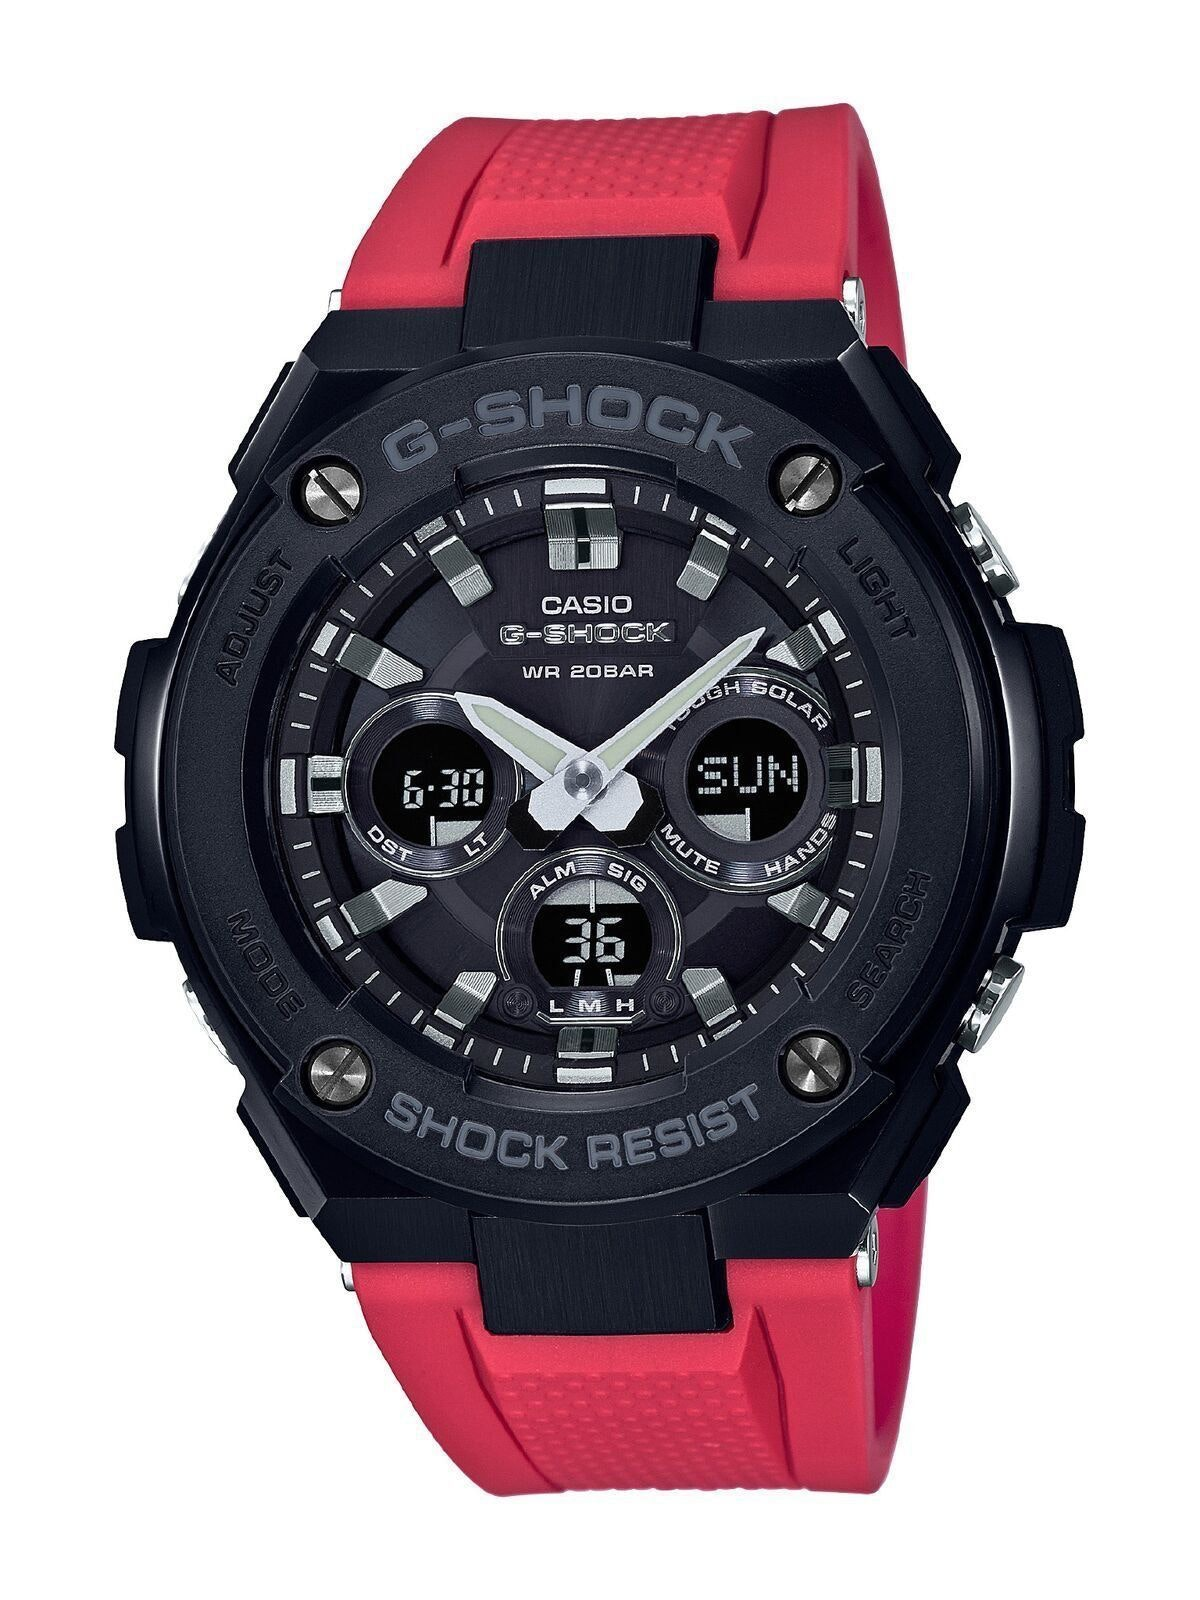 Casio G-Shock G Steel GSTS300G-1A4